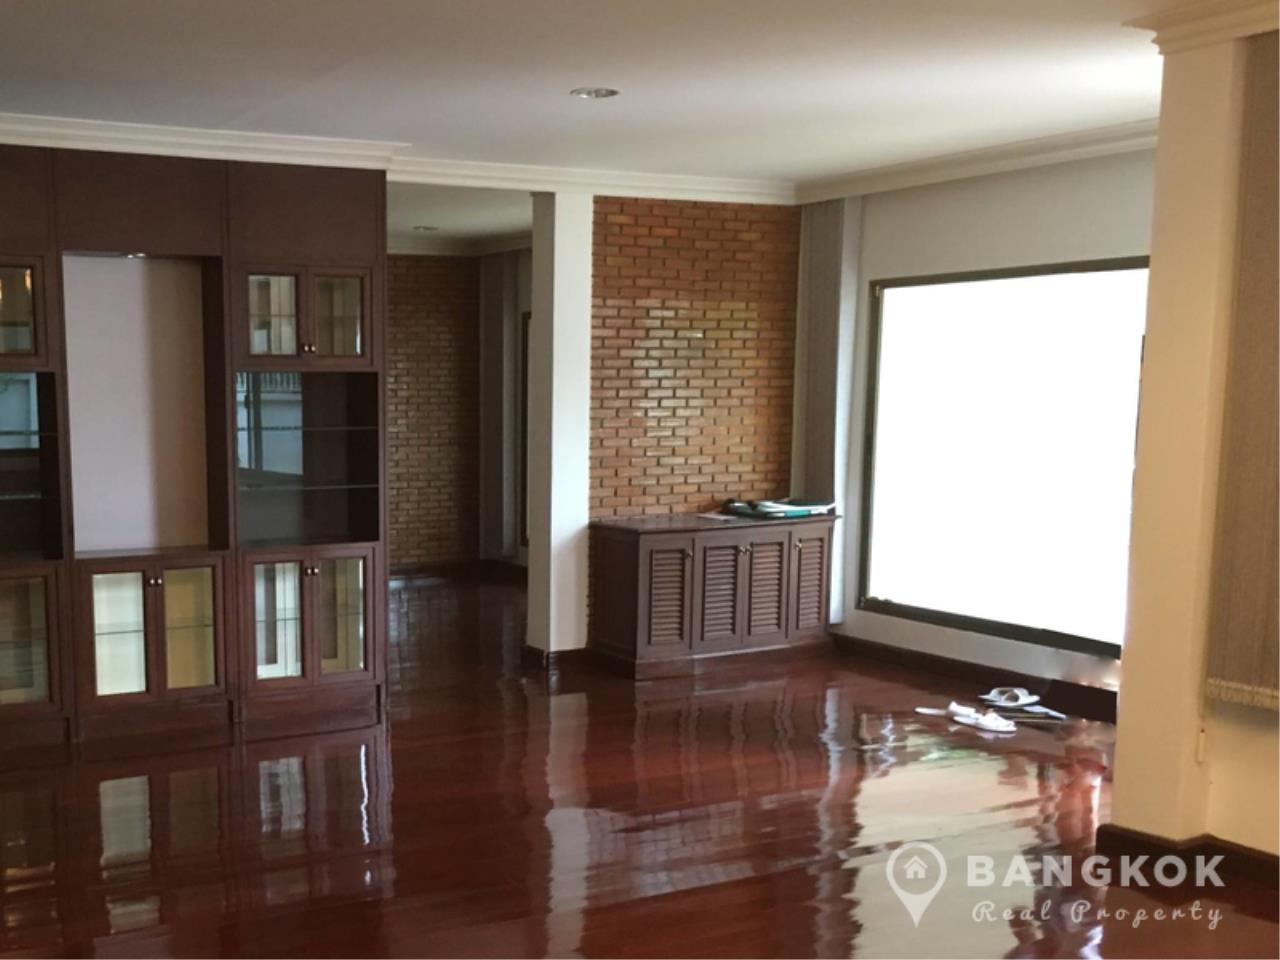 Bangkok Real Property Agency's Detached Spacious 3 Bed 3 Bath house with Garden in Thonglor  2